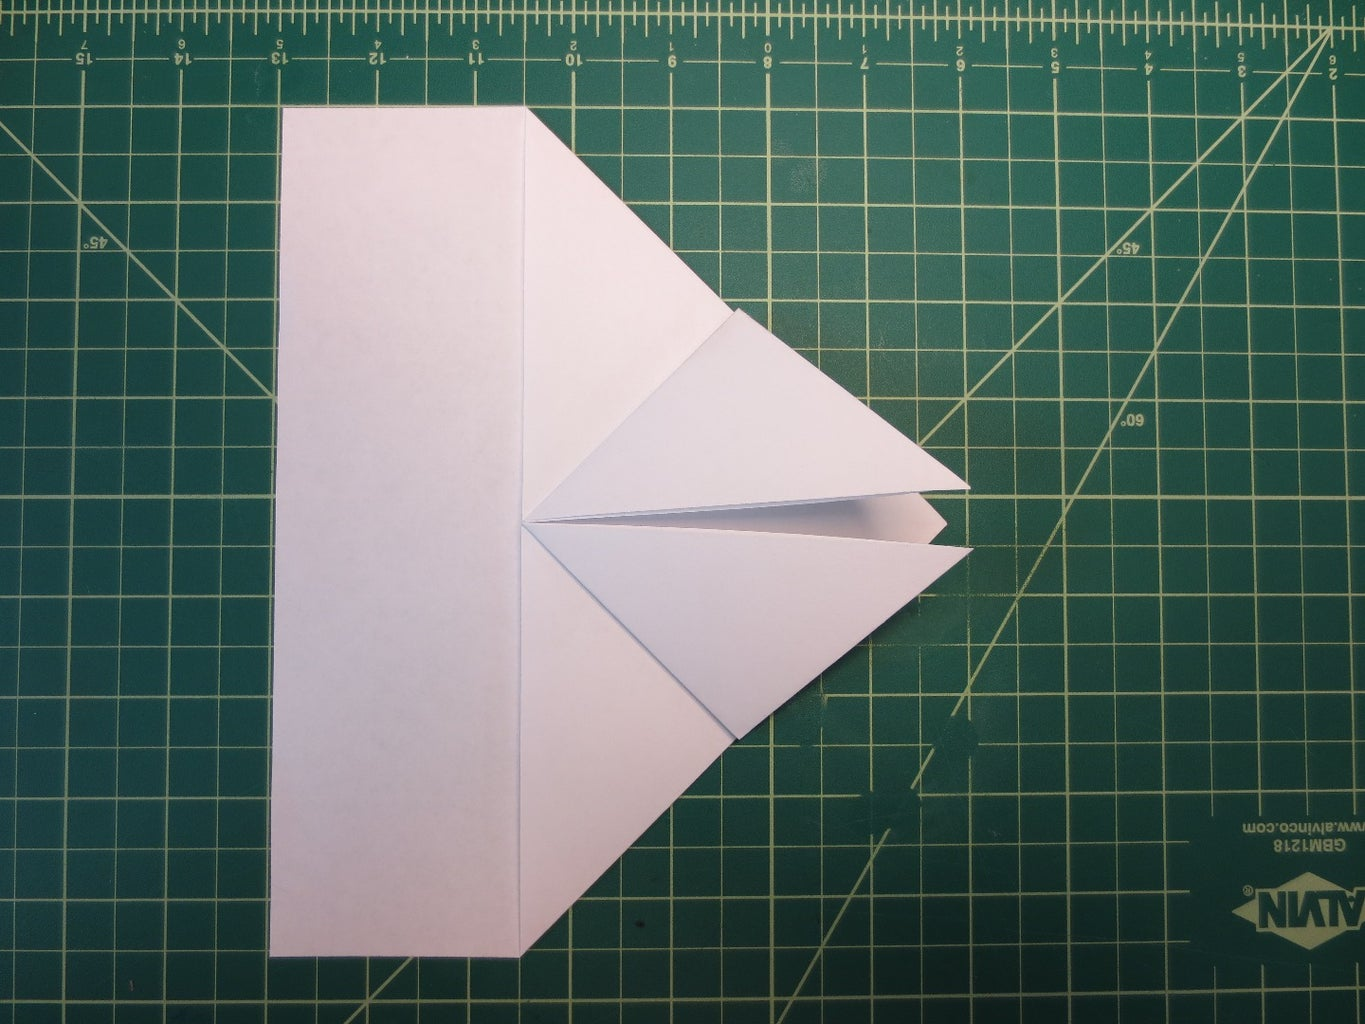 Construct the 'nose' of the Glider